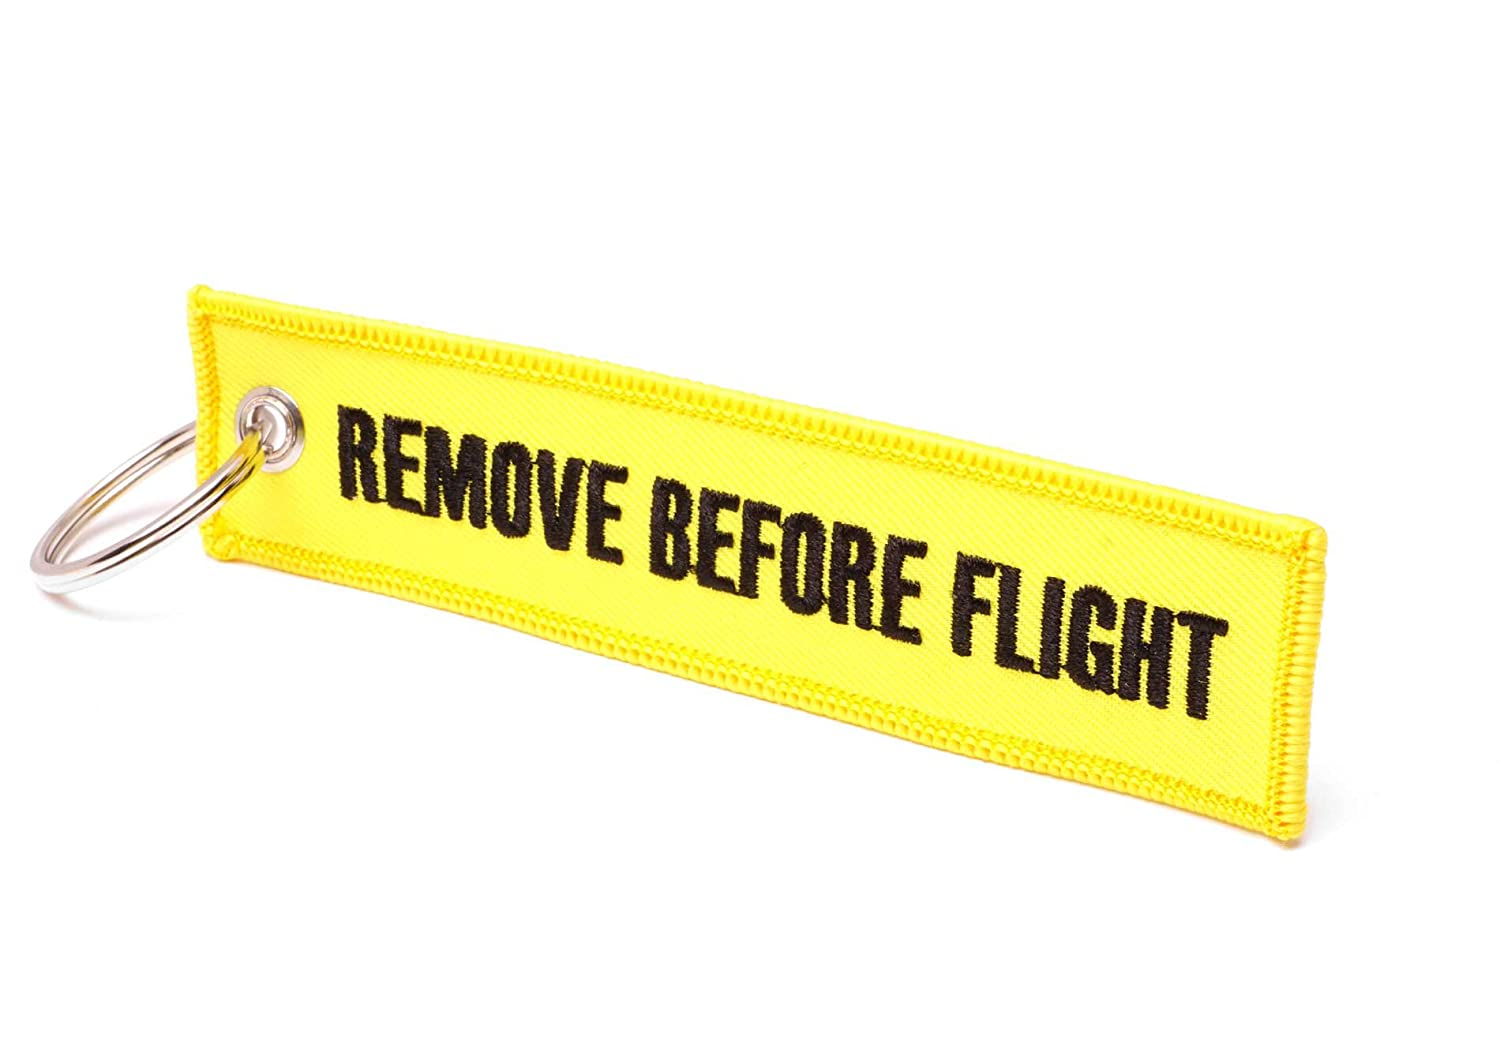 REMOVE BEFORE FLIGHT Llavero - 2 Stk. Set | Original EU ...